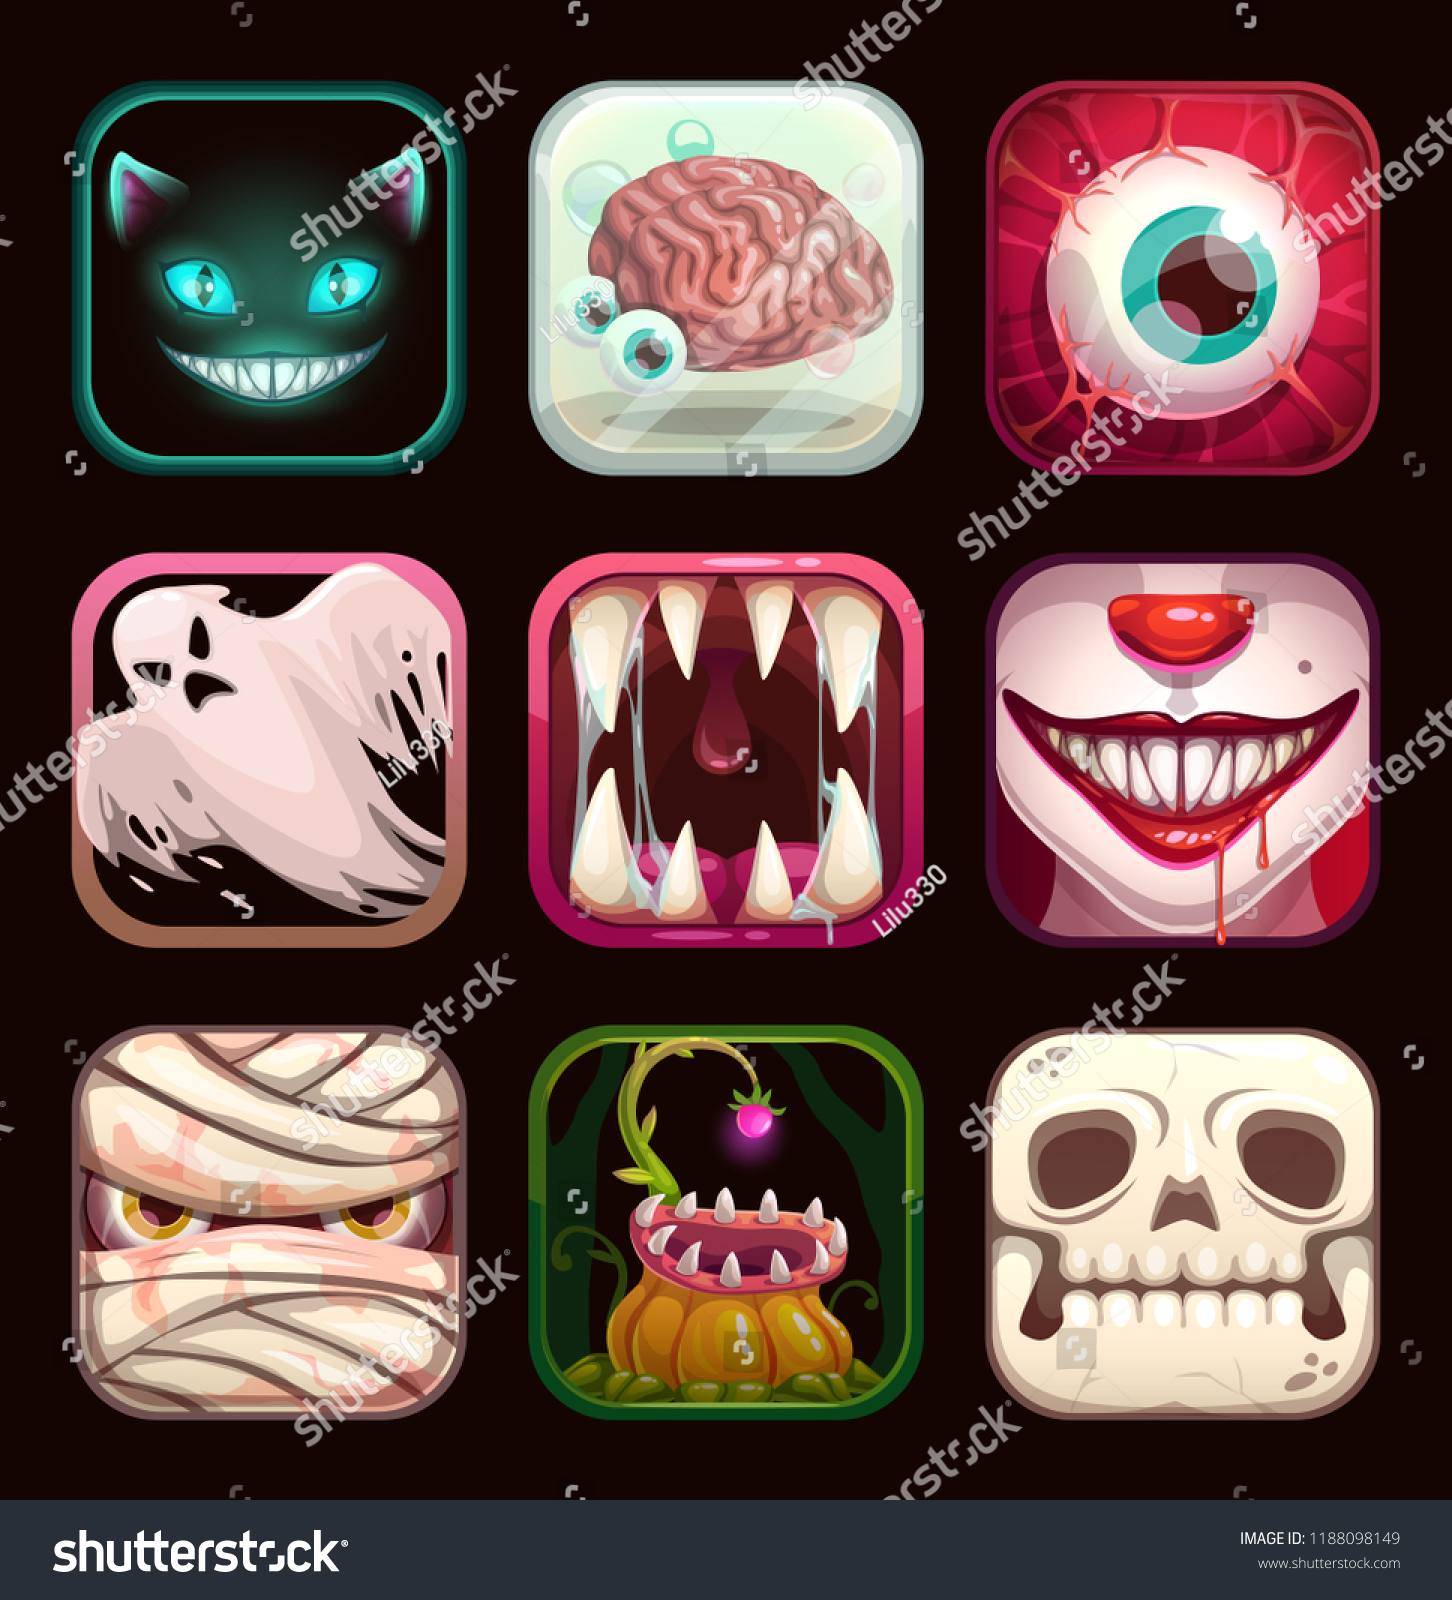 Scary App Icons On Black Background Stock Vector (Royalty Free ...